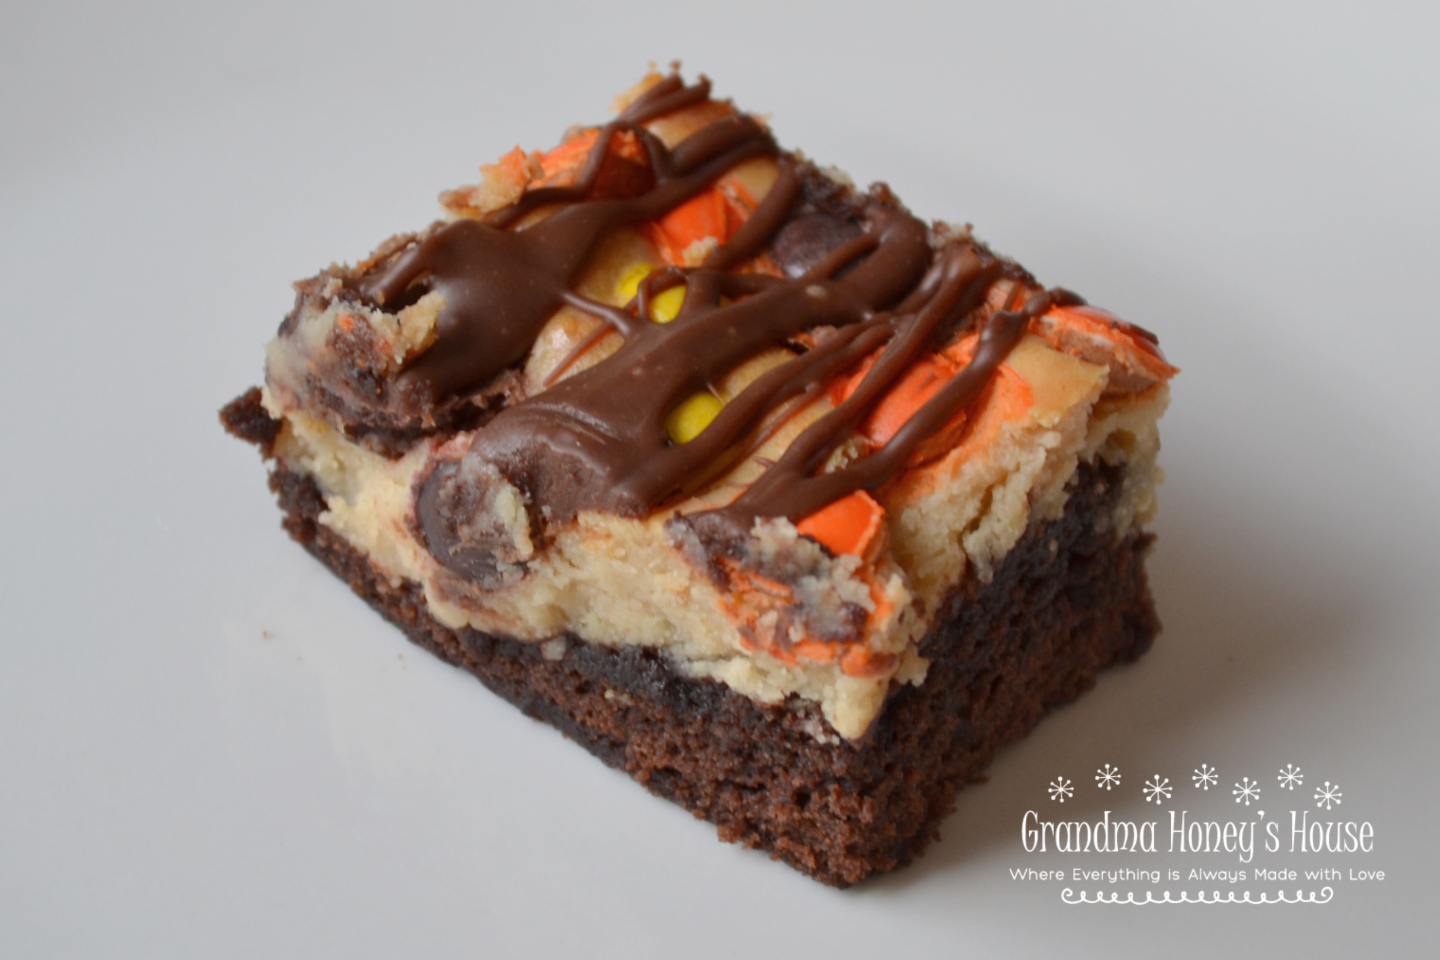 Extreme Peanut Butter Cream Cheese Brownies are extreme because they are a decadent brownie dessert, loaded with a peanut butter cream cheese layer, and then topped with a bag of Reese's Baking Cups and Reese's Pieces Candies